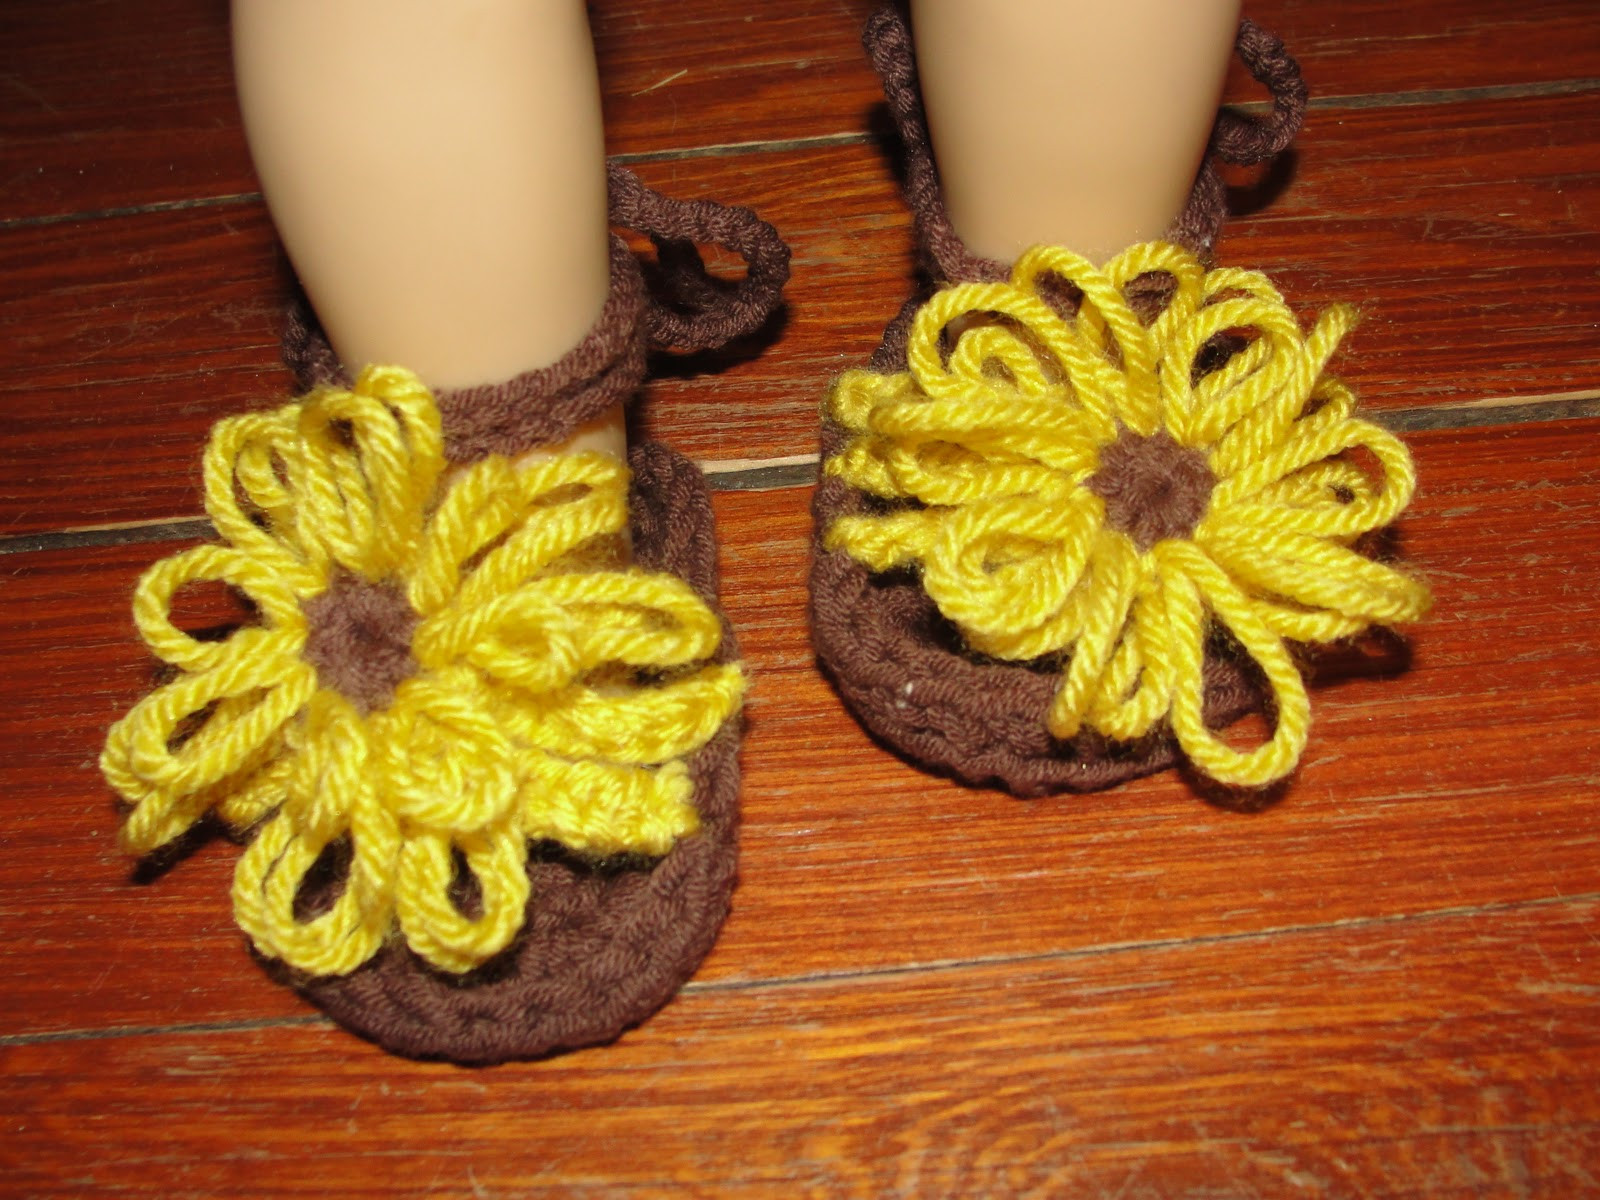 Crochet Baby Sandals Pattern Awesome 60 Adorable and Free Crochet Baby Sandals Patterns Of Perfect 43 Photos Crochet Baby Sandals Pattern